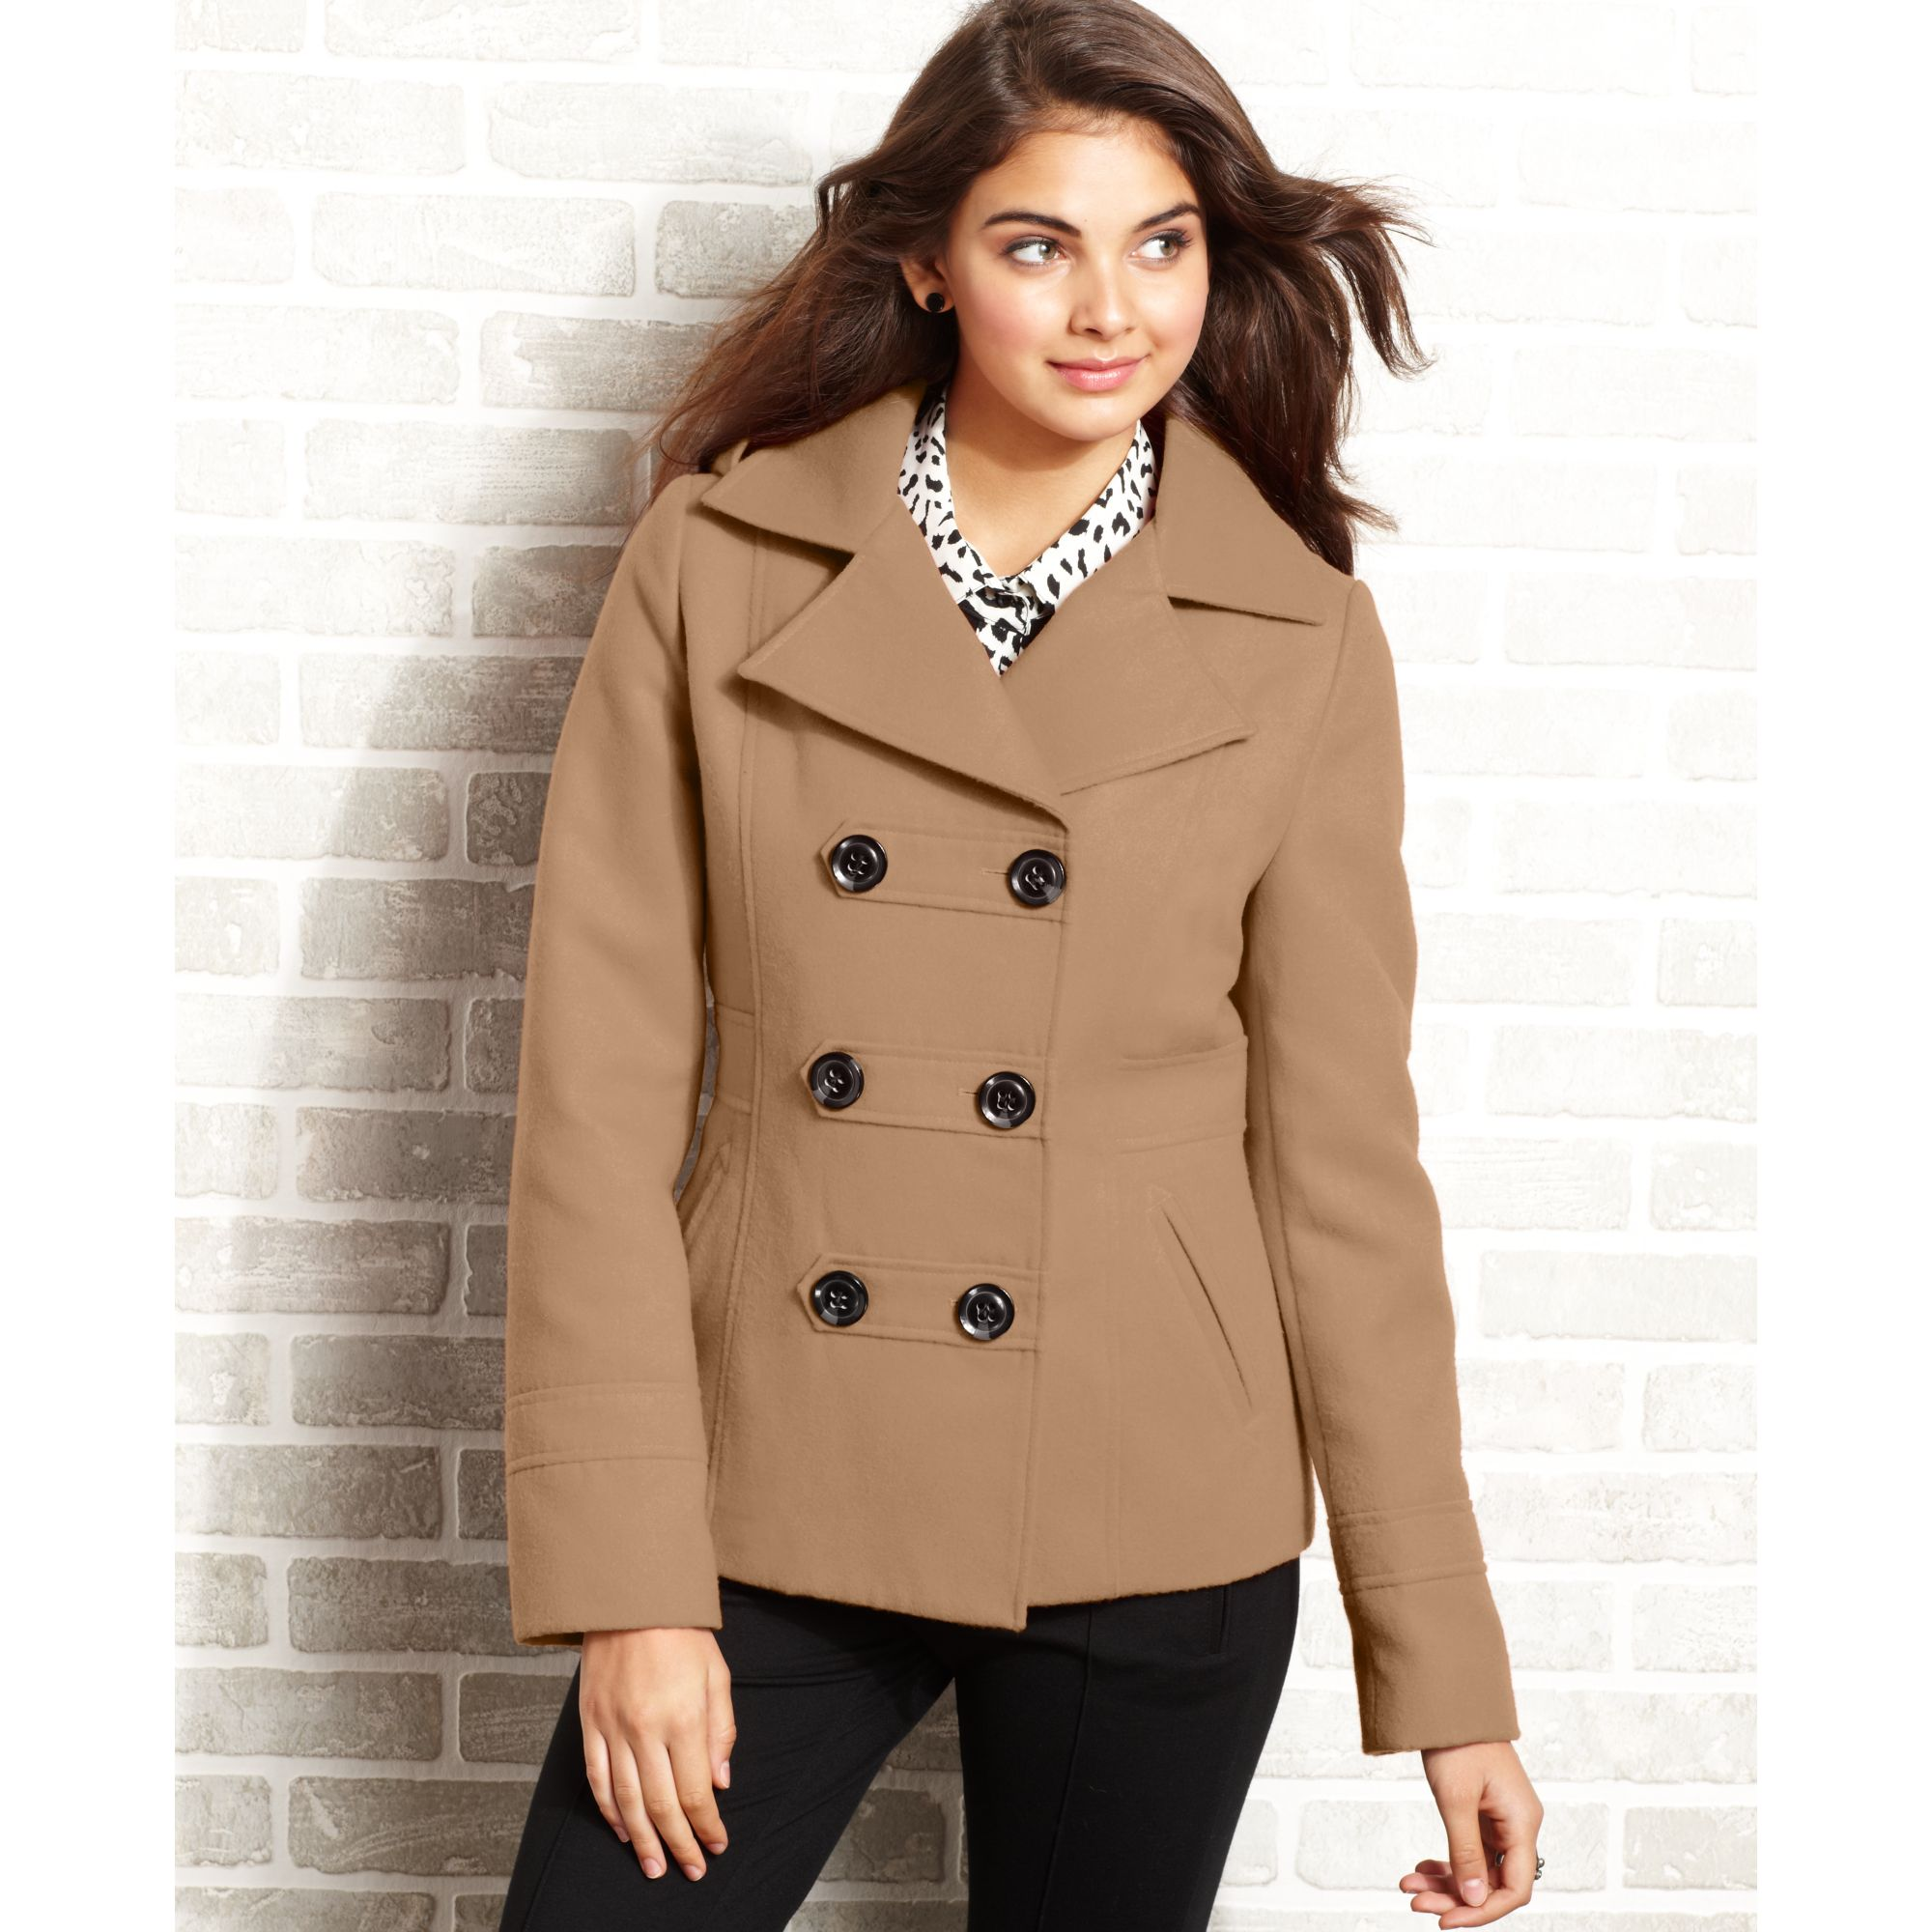 Shop women's coats & jackets at eternal-sv.tk Discover a stylish selection of the latest brand name and designer fashions all at a great value.